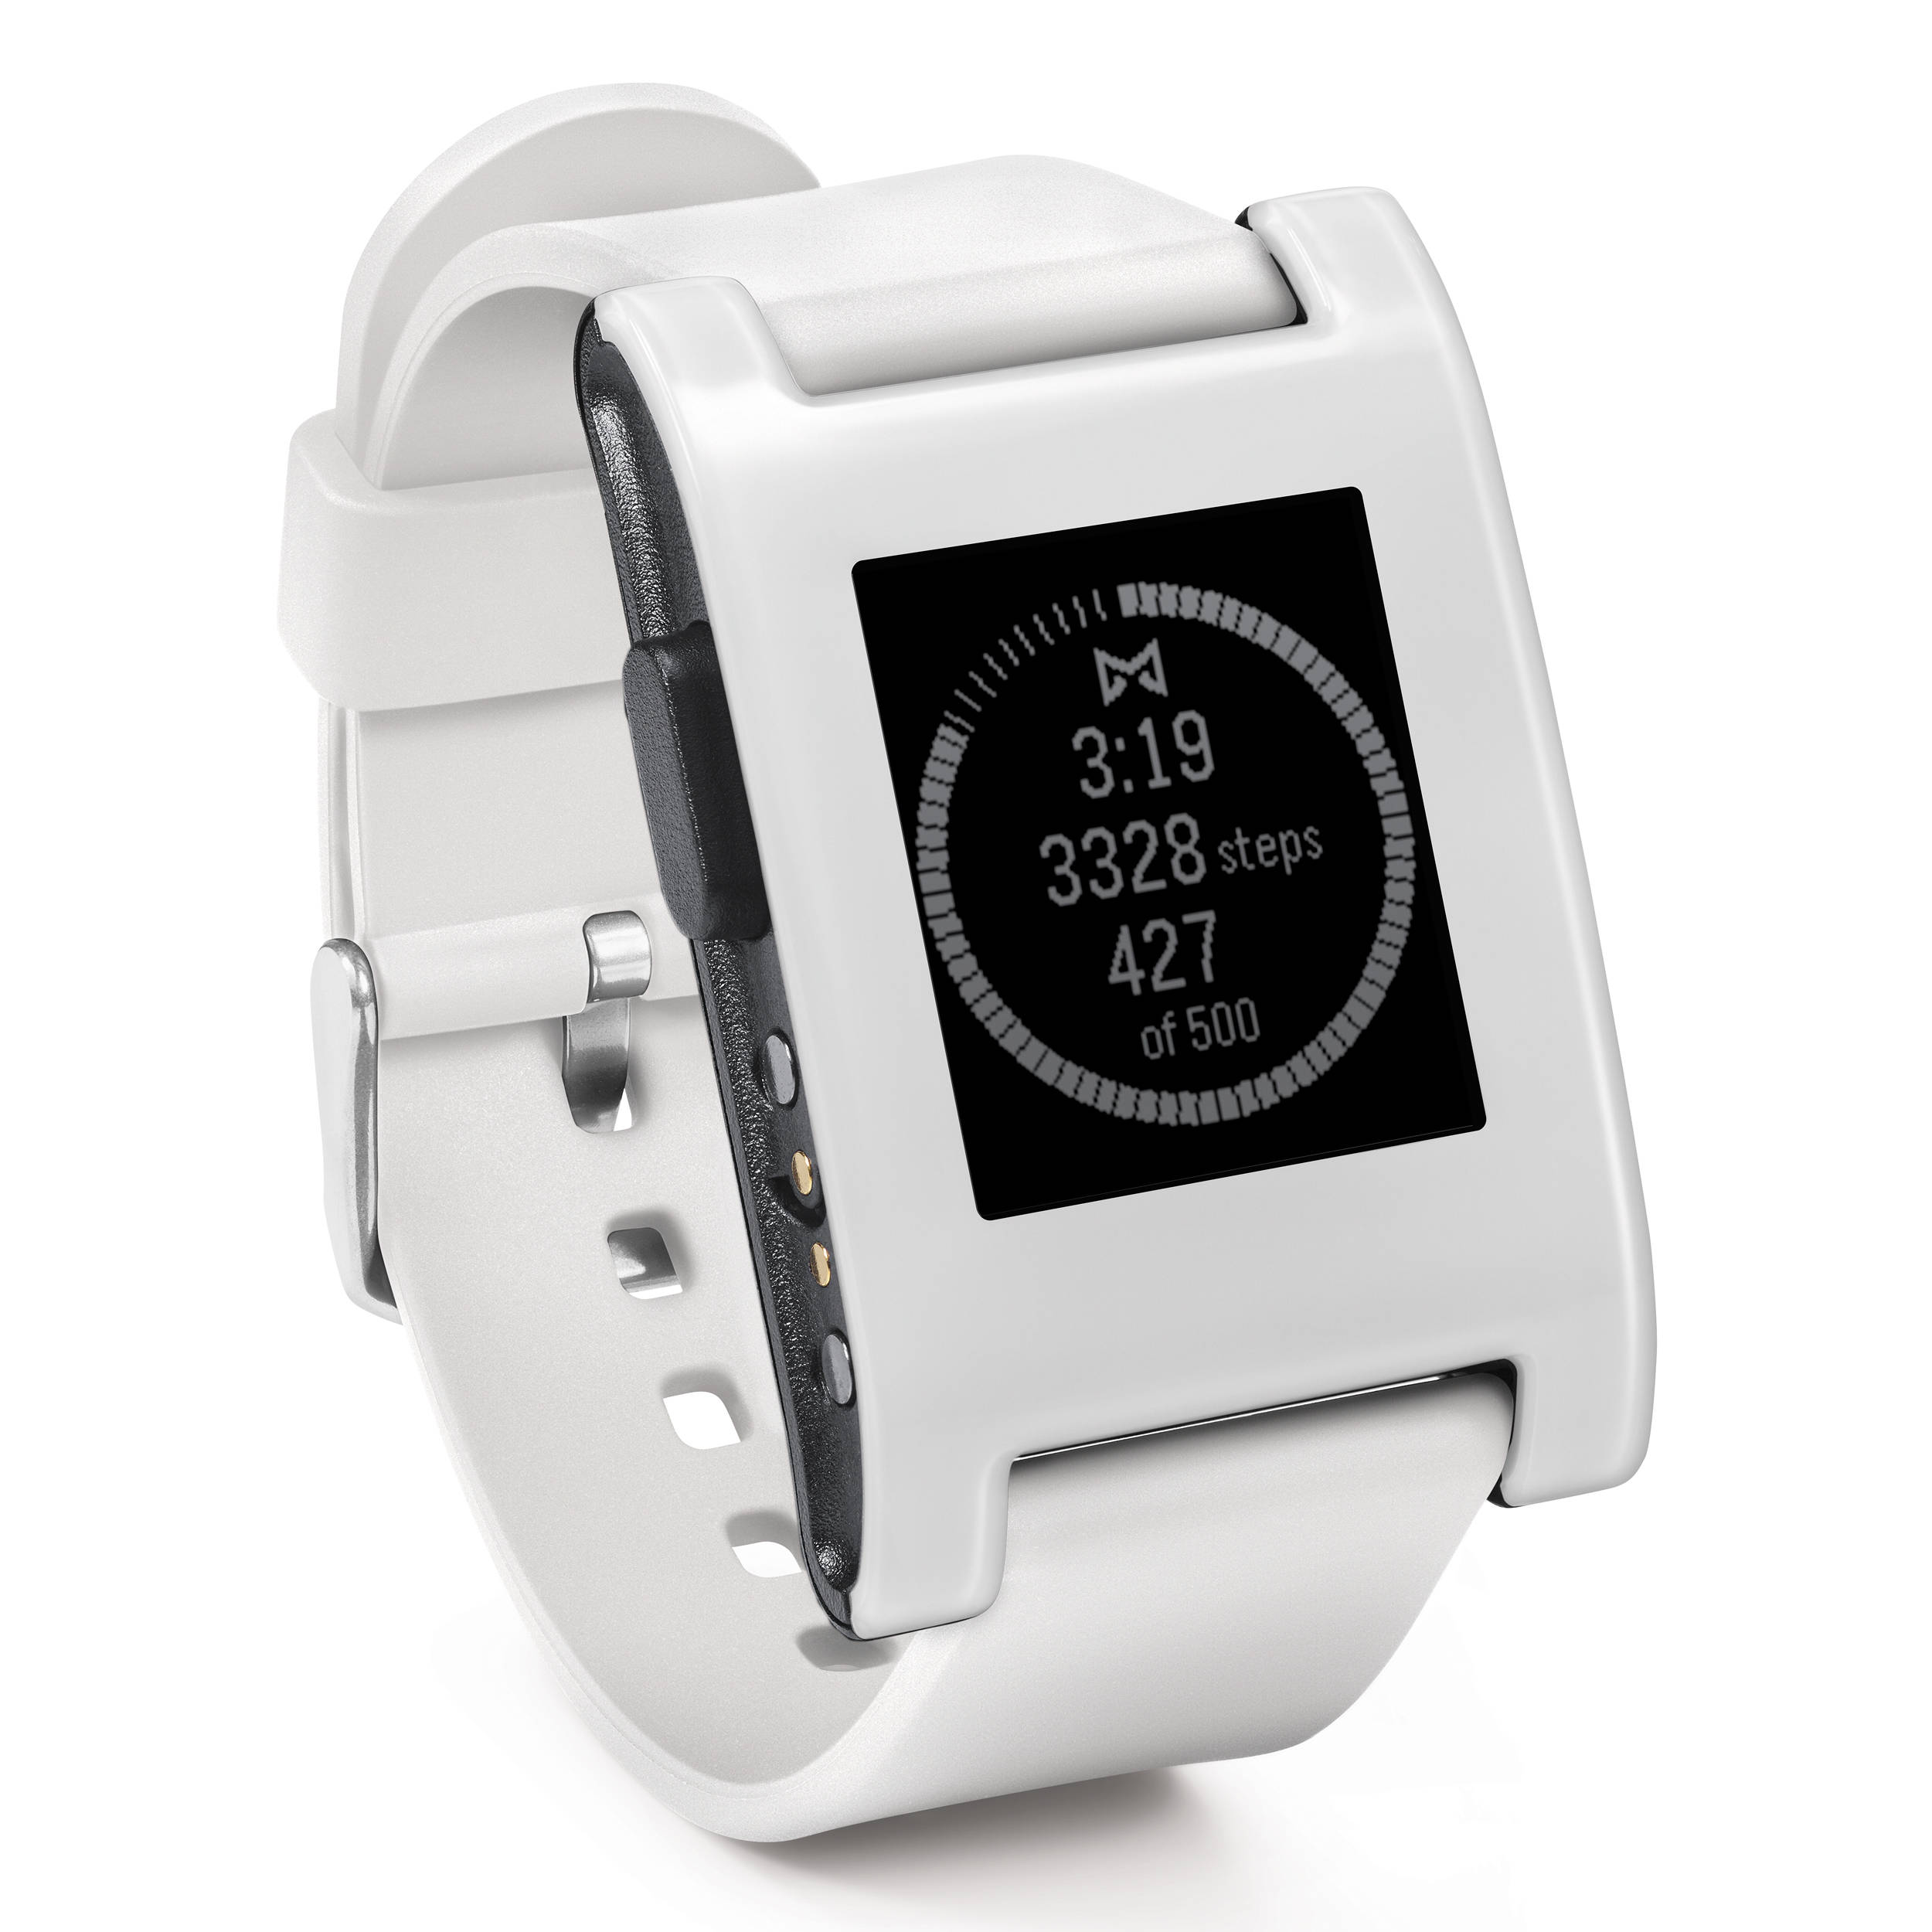 Pebble smartwatch arctic white silicone band 301wh b h photo for Pebble watches